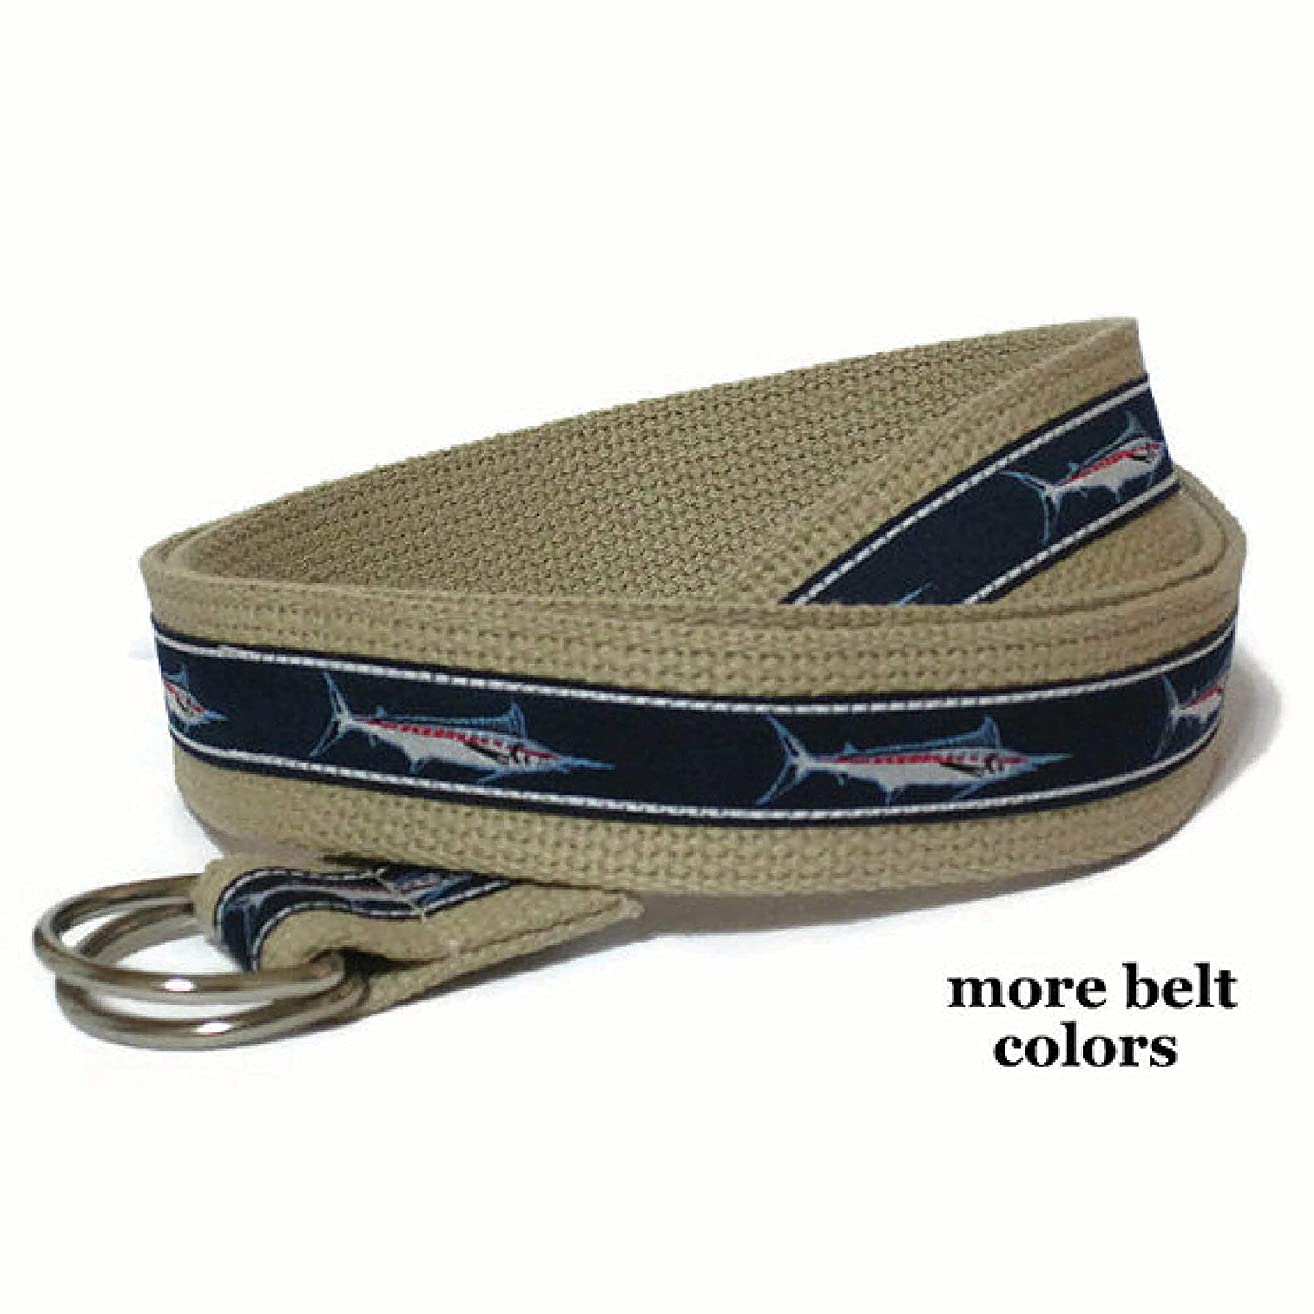 Mens Belt/Canvas Belt/Navy Fish D-Ring Belt/Khaki Ribbon Belt for Men Teens Big and Tall Men - Marlin Sailfish in navy sizes xs to Big and Tall